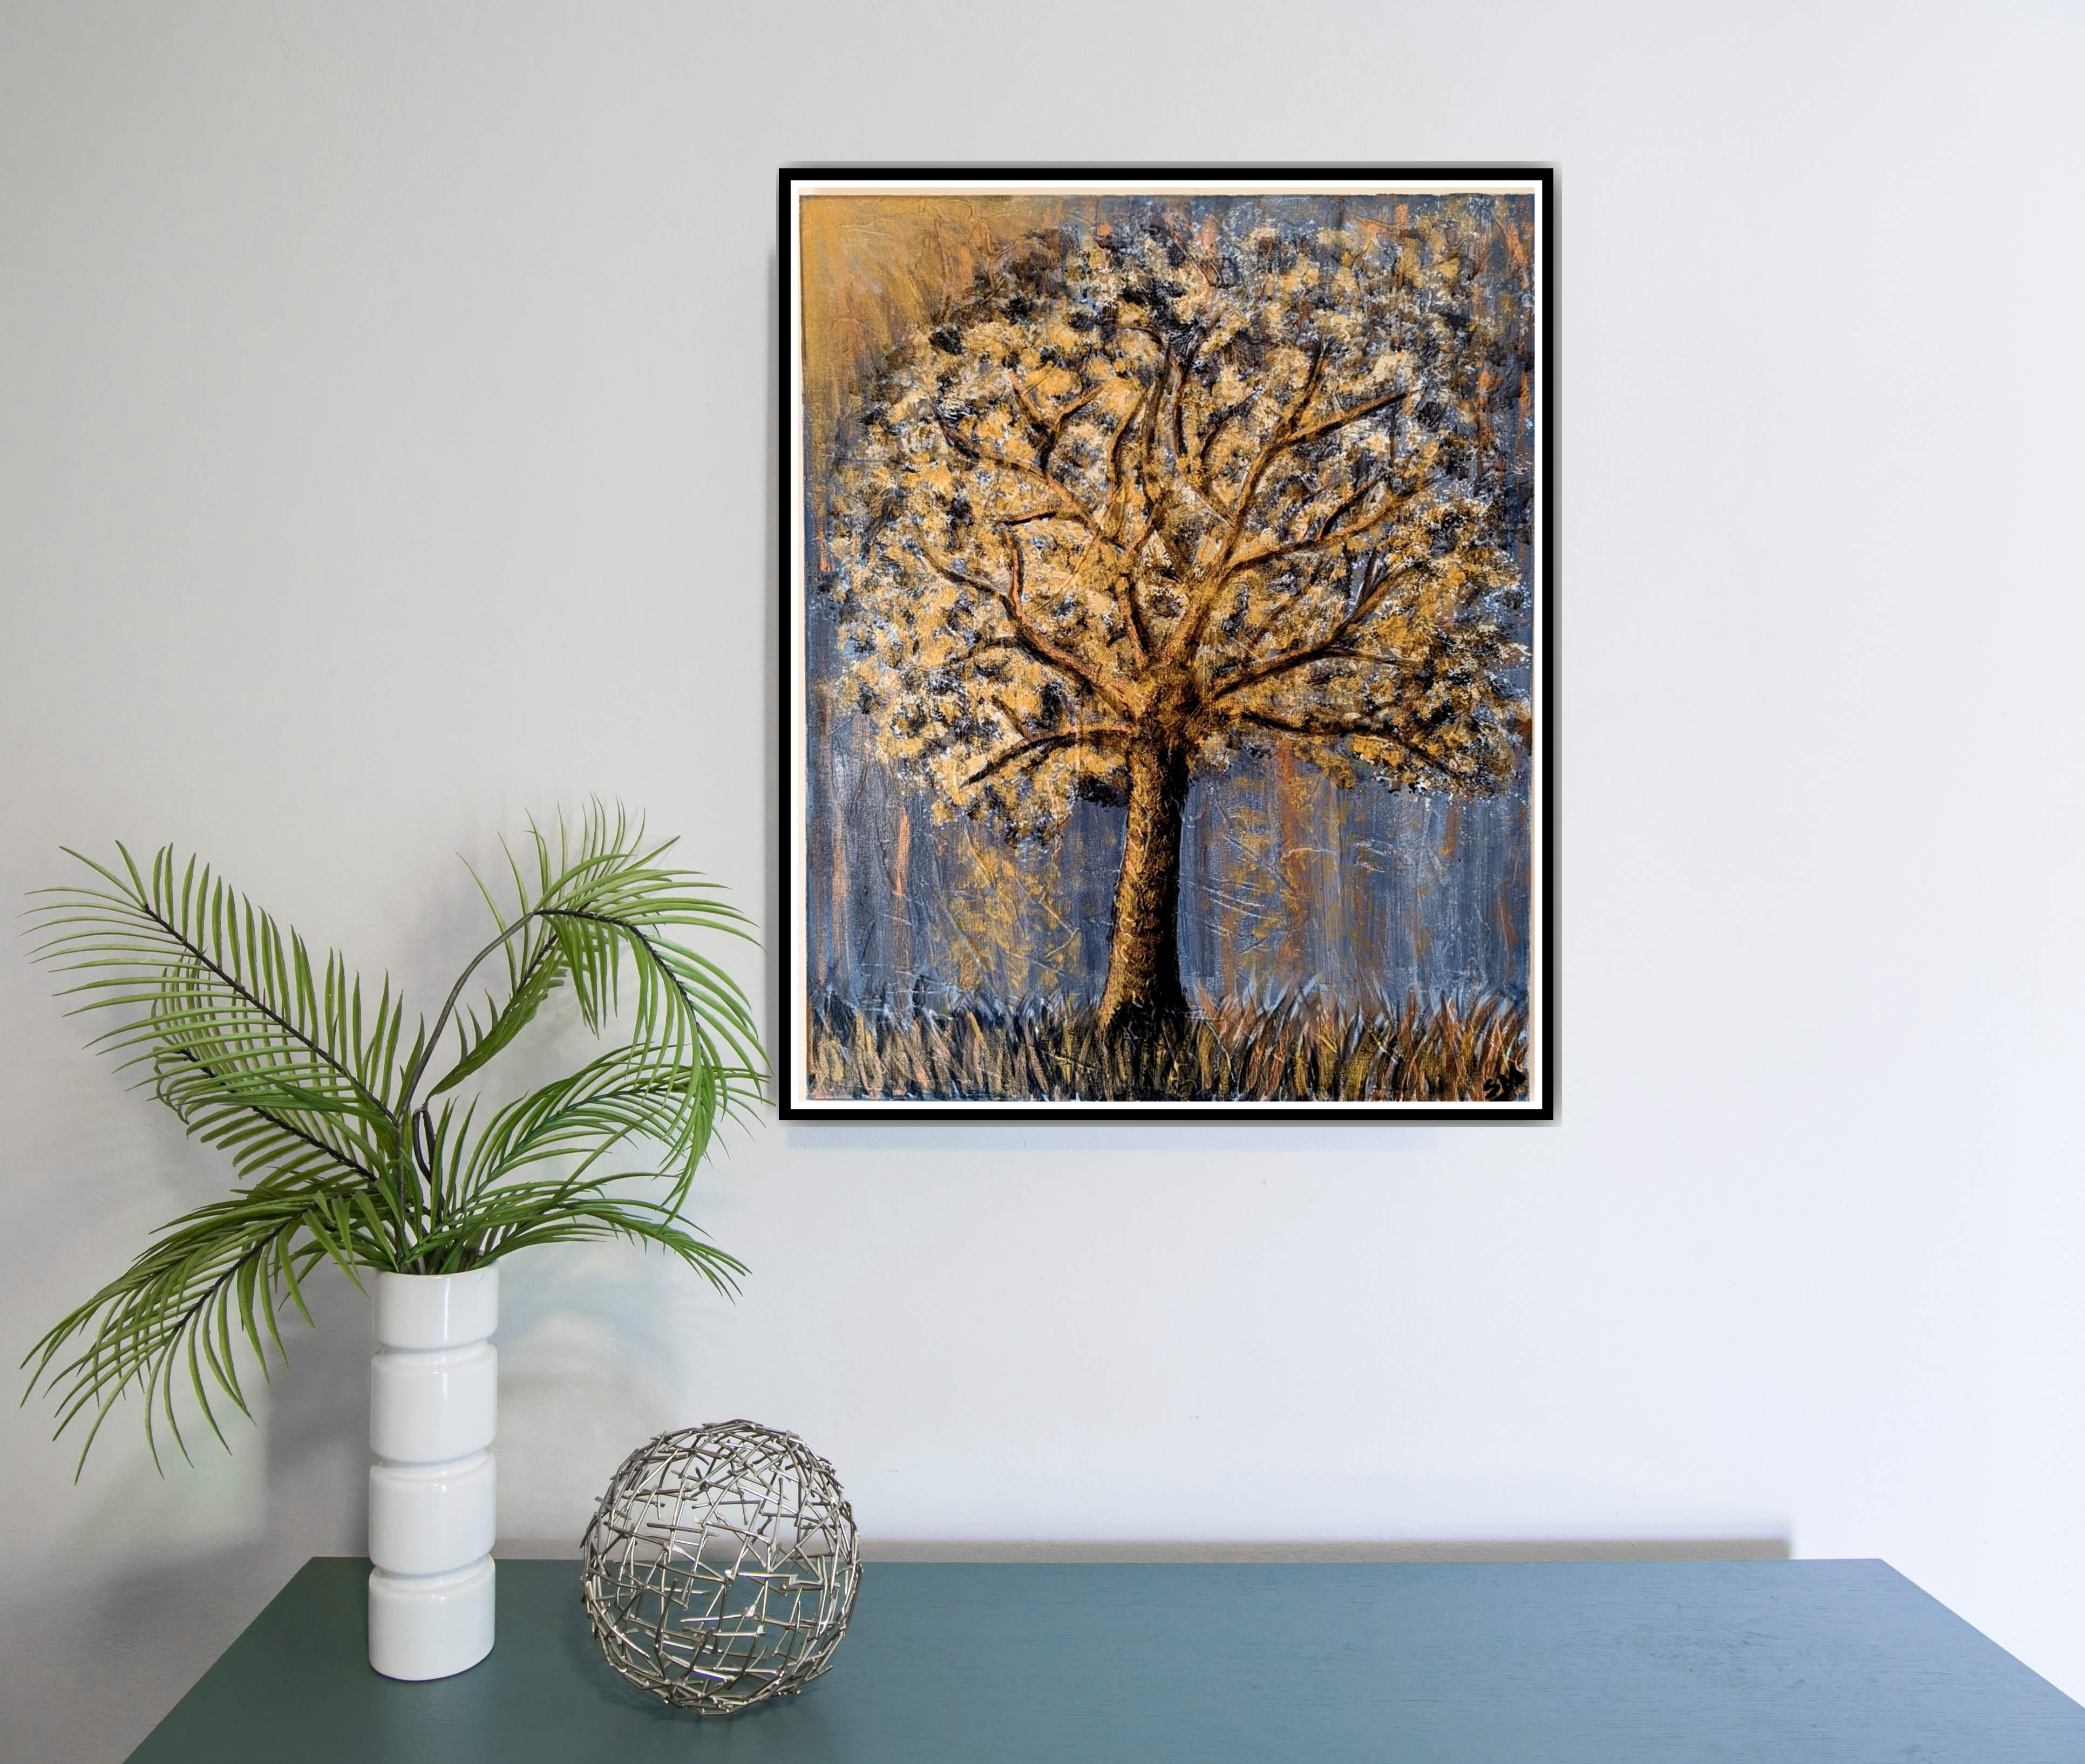 Gold Tree on Wall Painting